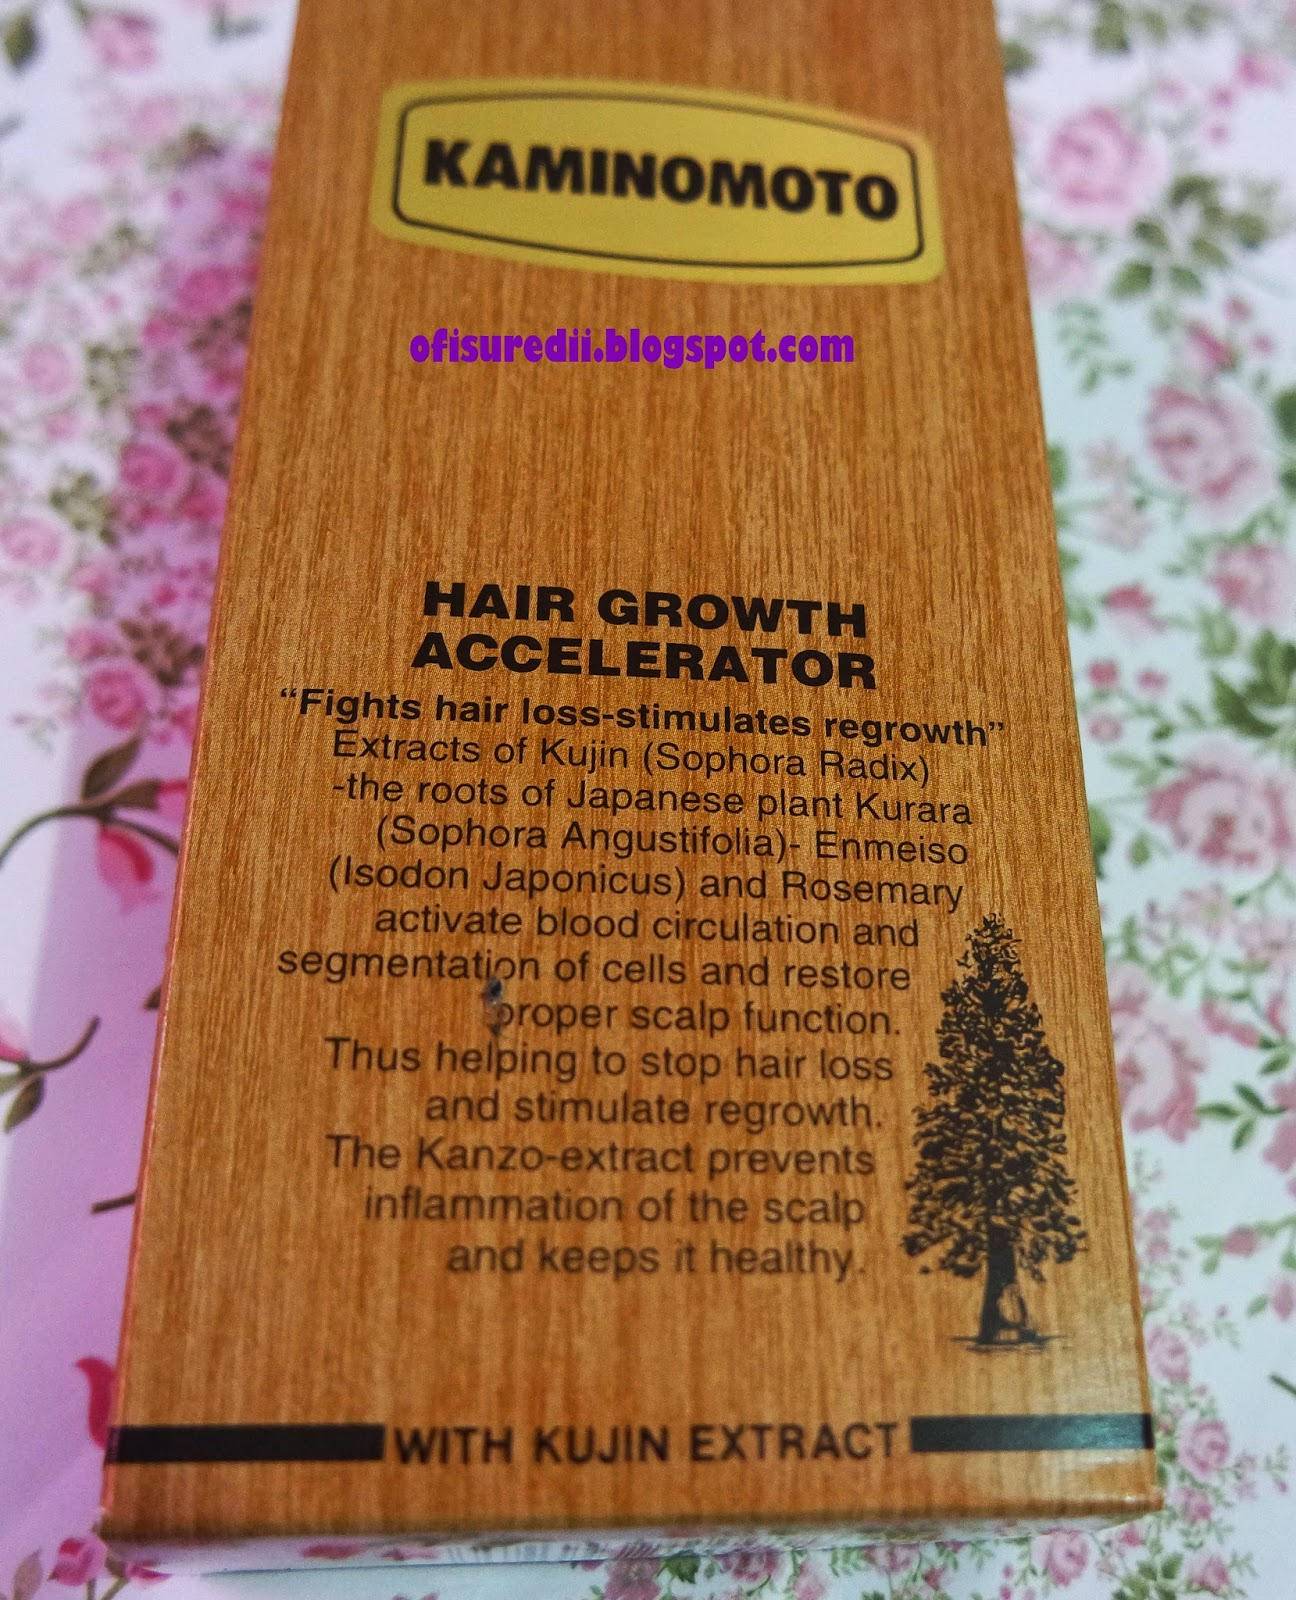 Kaminomoto Hair Growth Accelerator Review Ofisu Redii 150ml Is Produced By Japan Company Since 1908 And Now It Distributed Pt Best Brilliant Indonesia